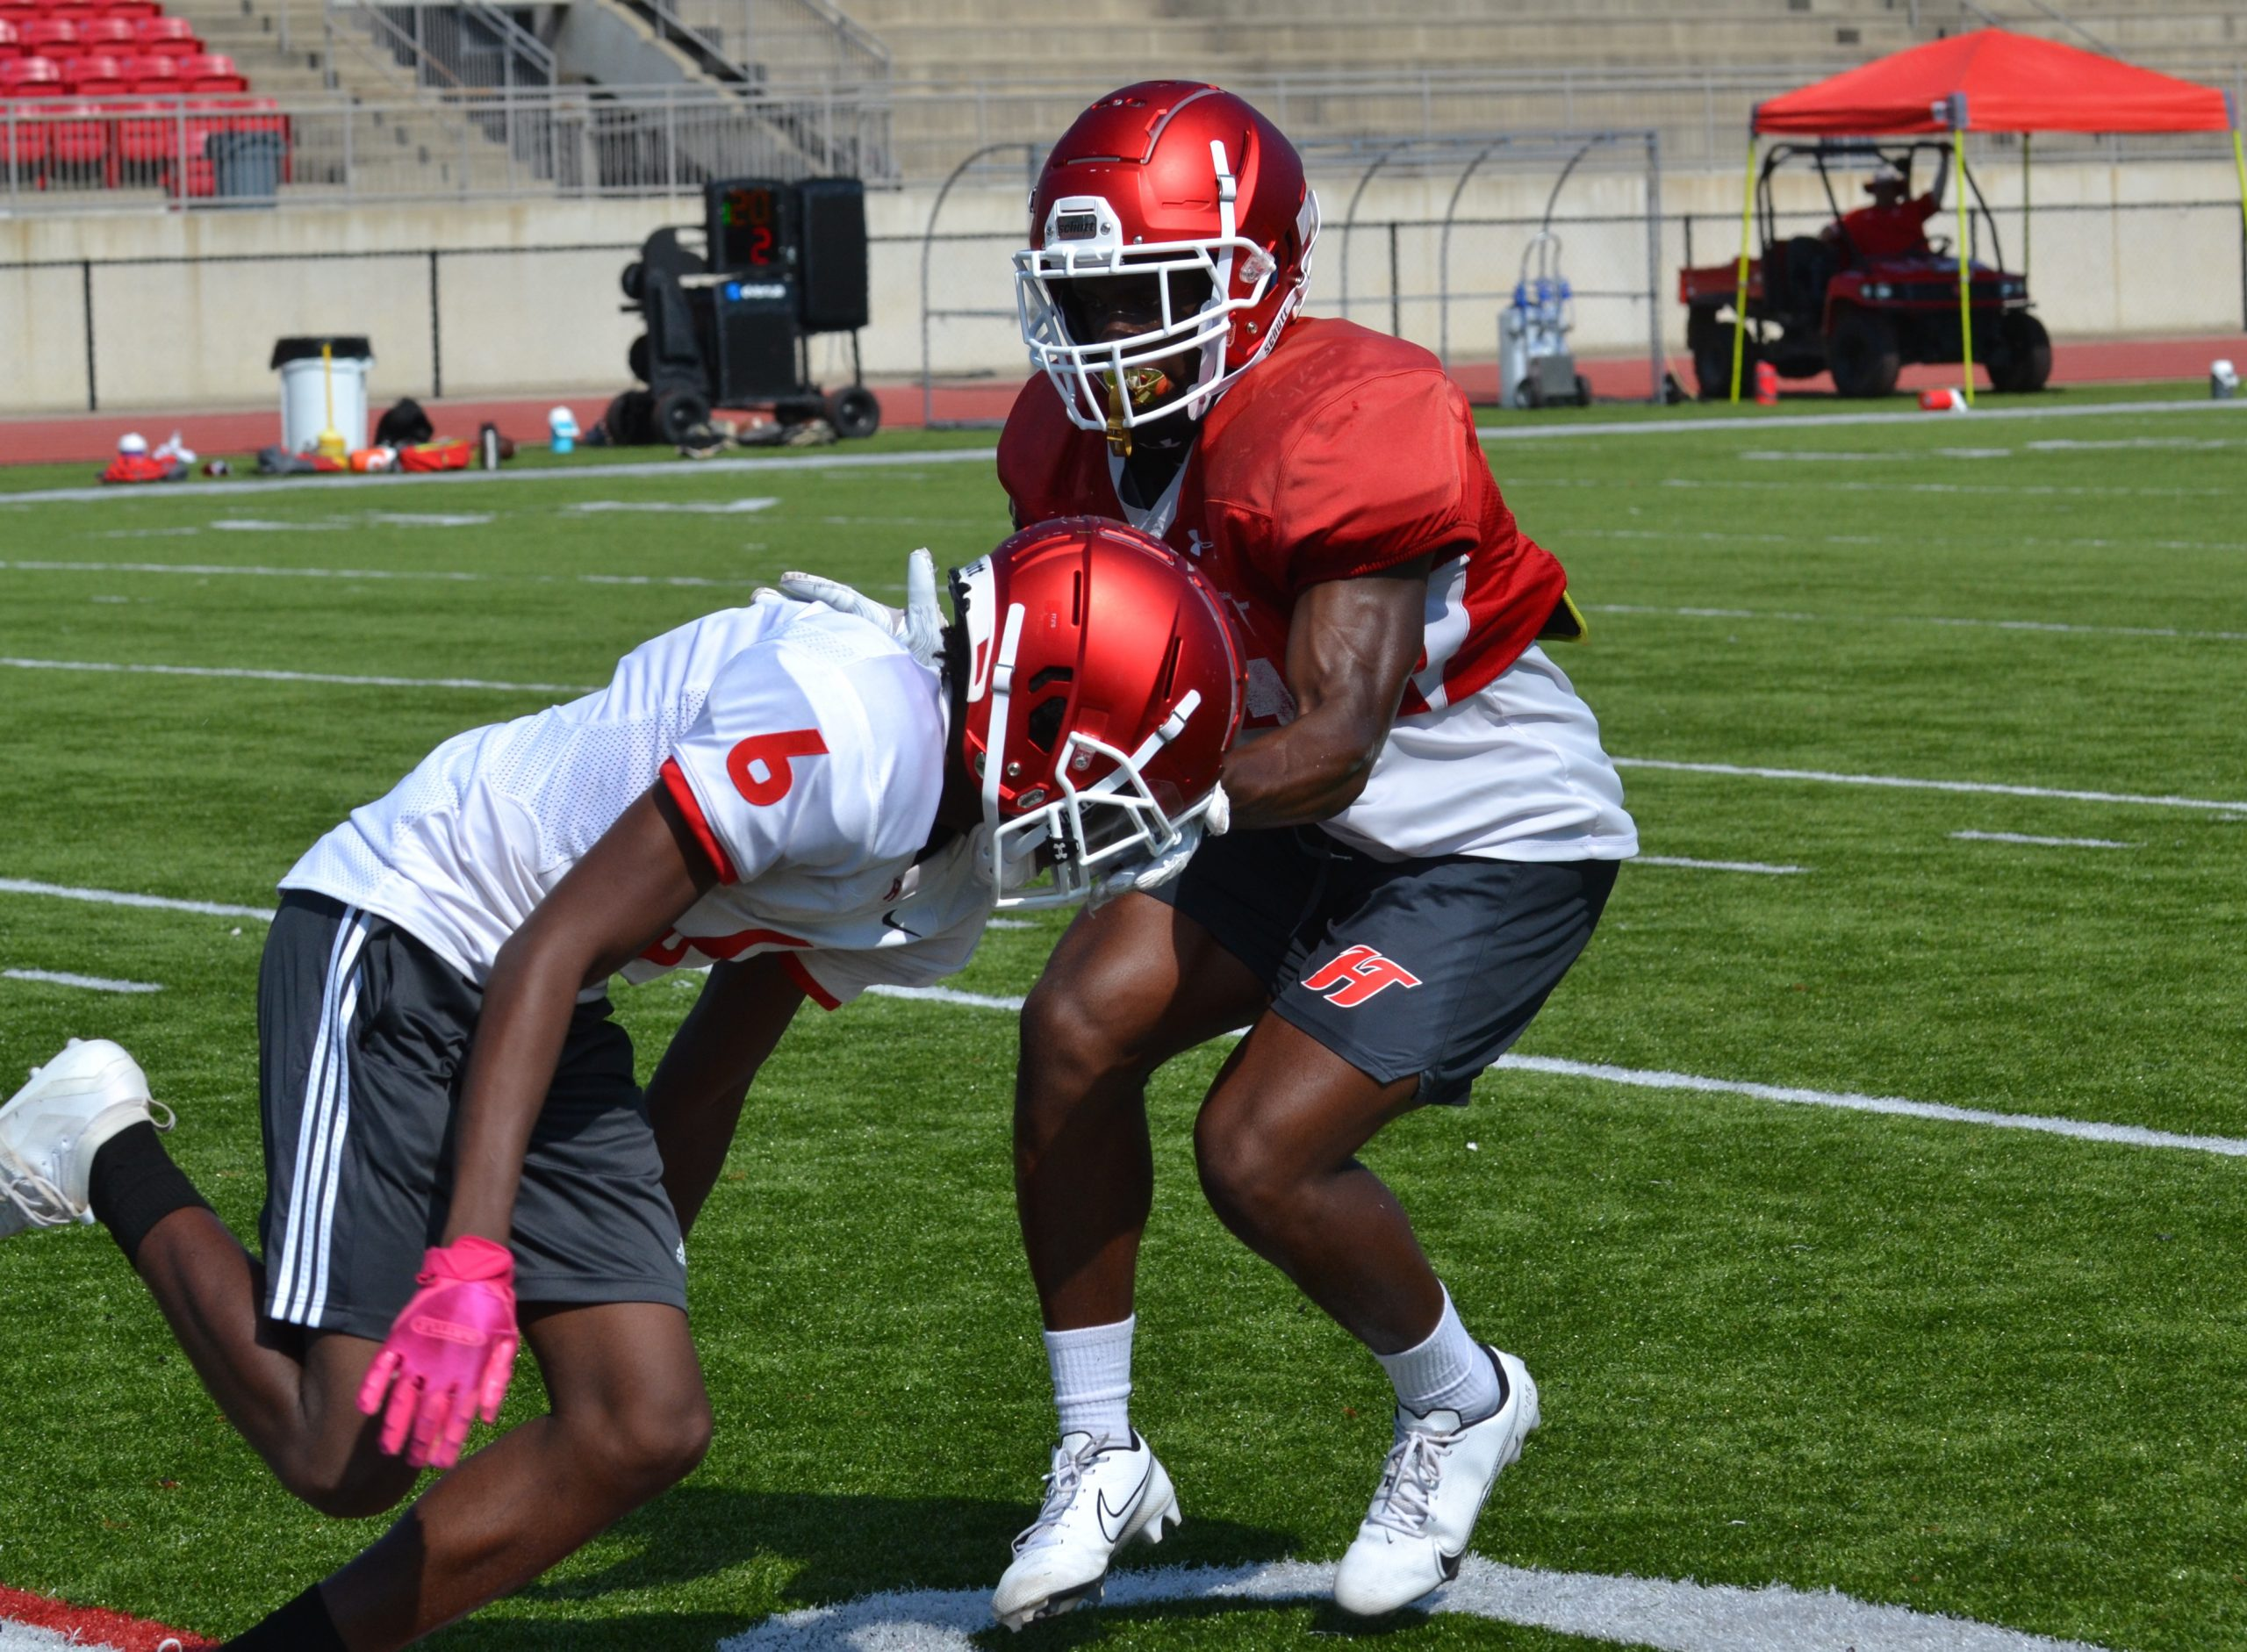 Hewitt-Trussville senior: 'There's talent and potential here'